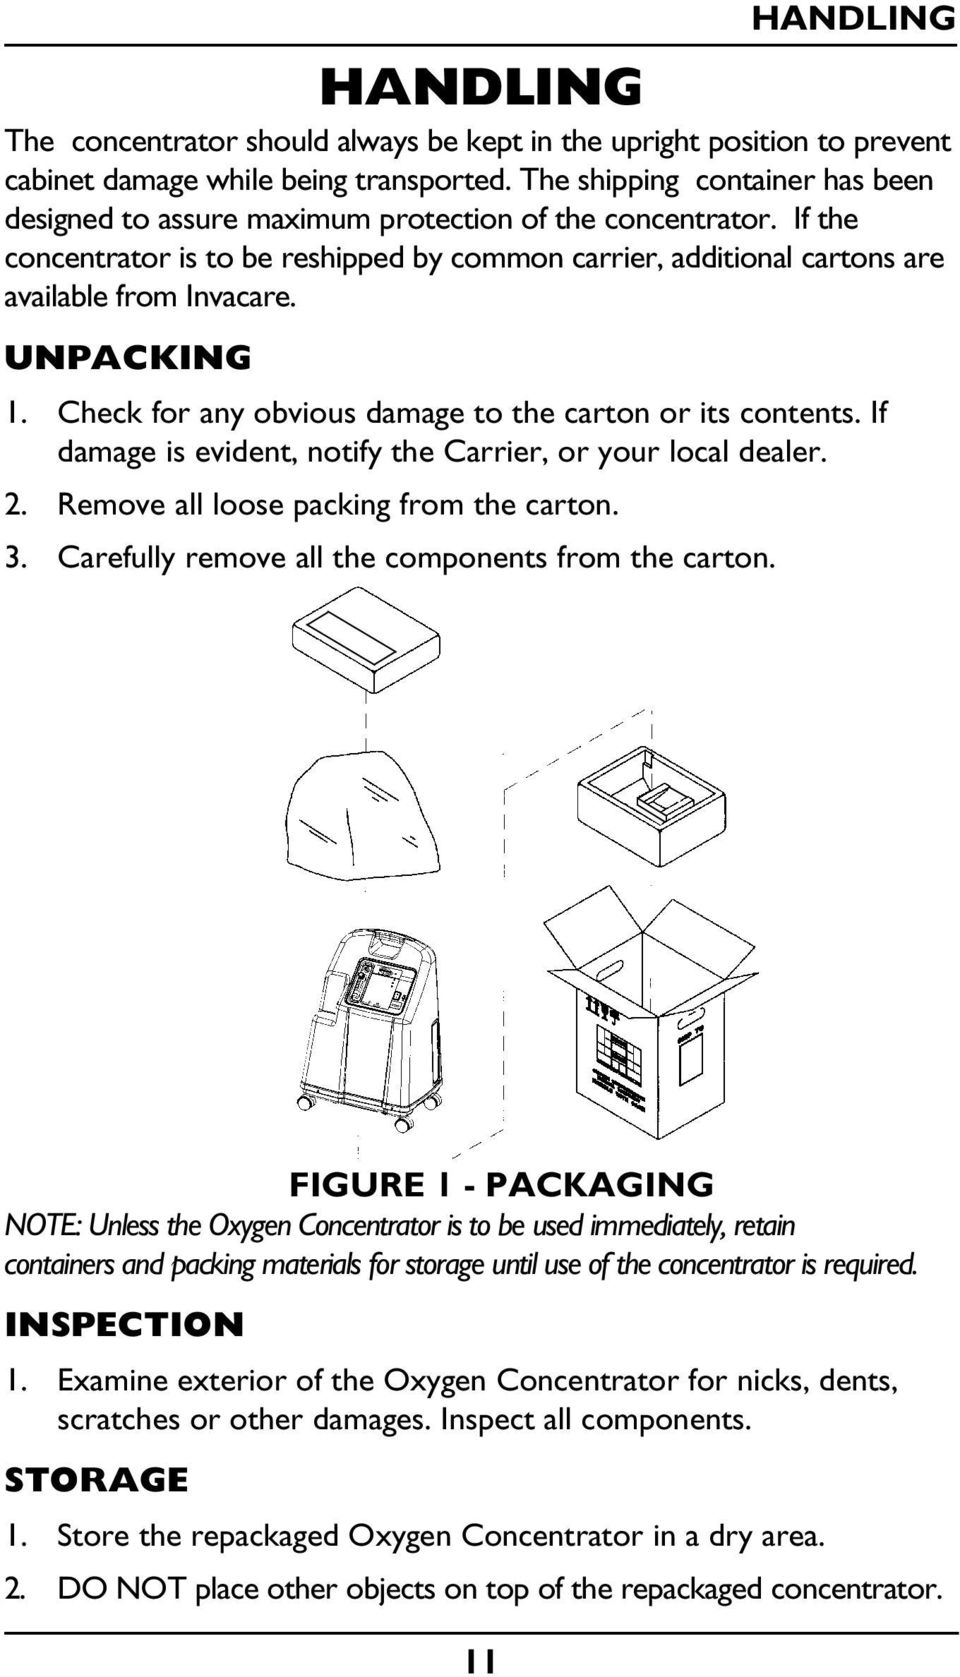 UNPACKING 1. Check for any obvious damage to the carton or its contents. If damage is evident, notify the Carrier, or your local dealer. 2. Remove all loose packing from the carton. 3.